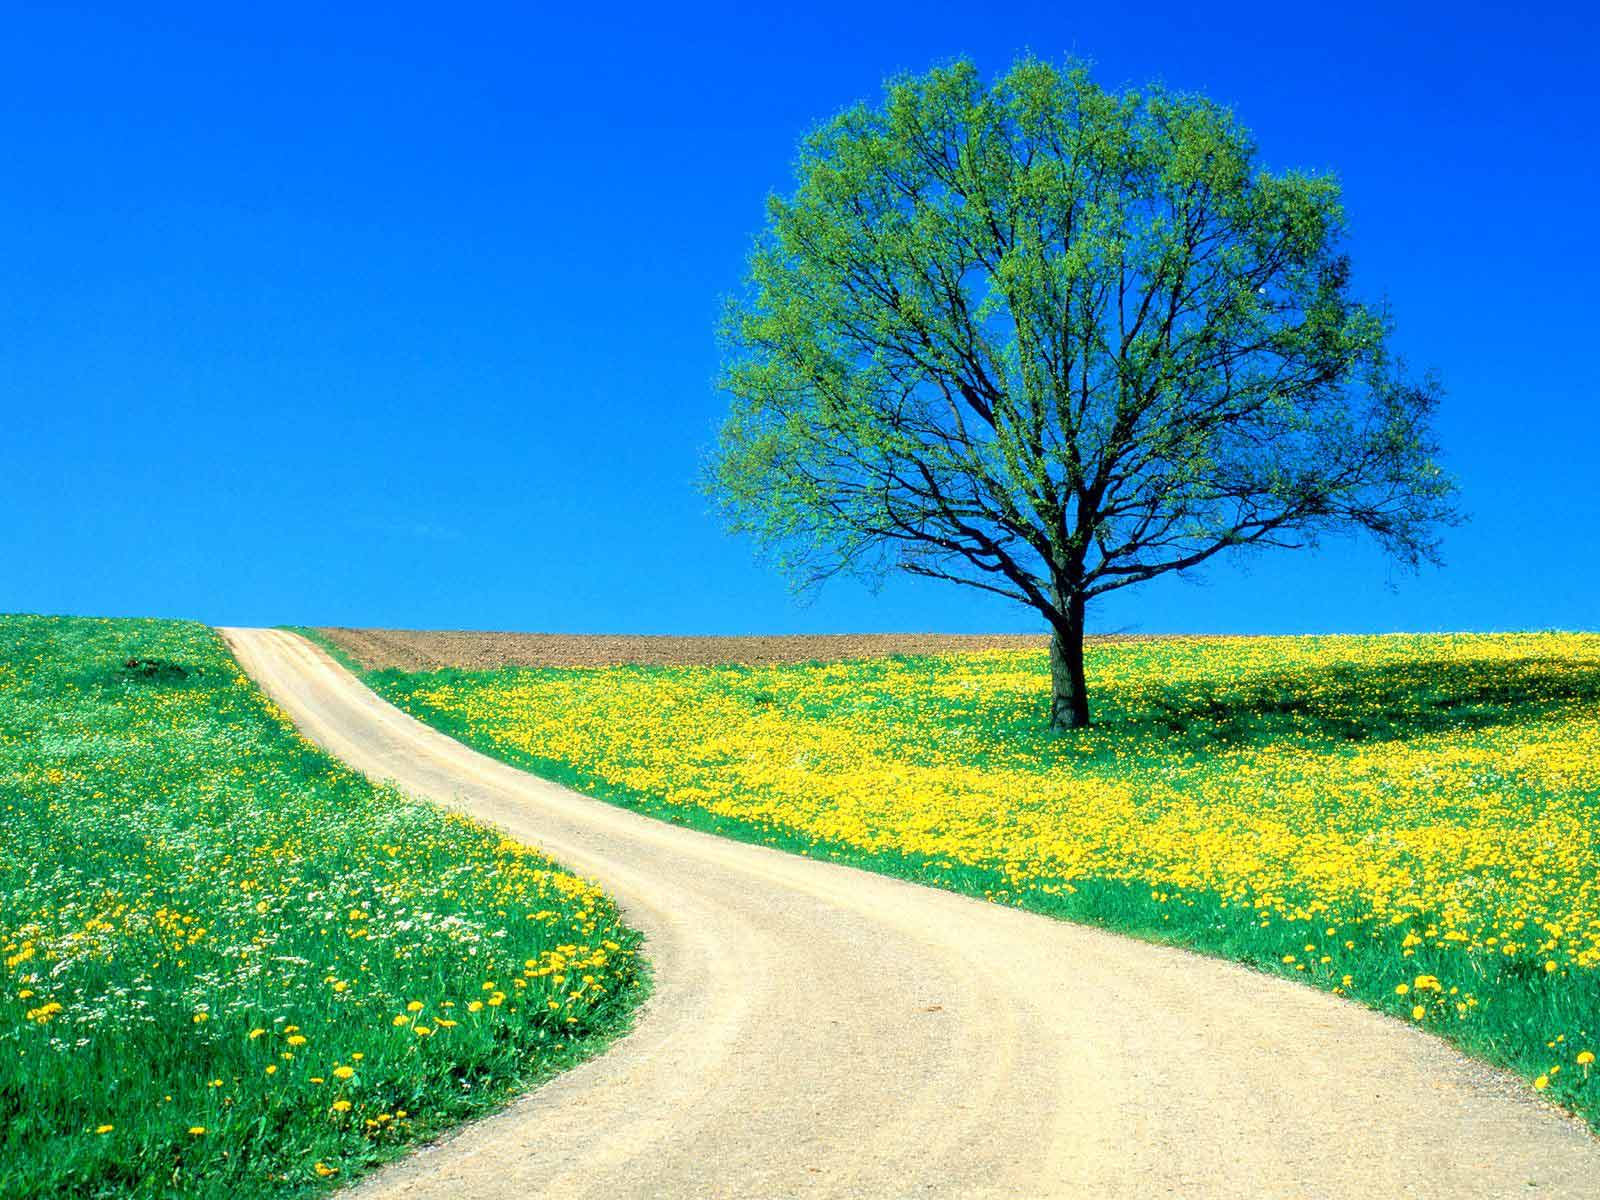 Spring HD Wallpapers 1600x1200